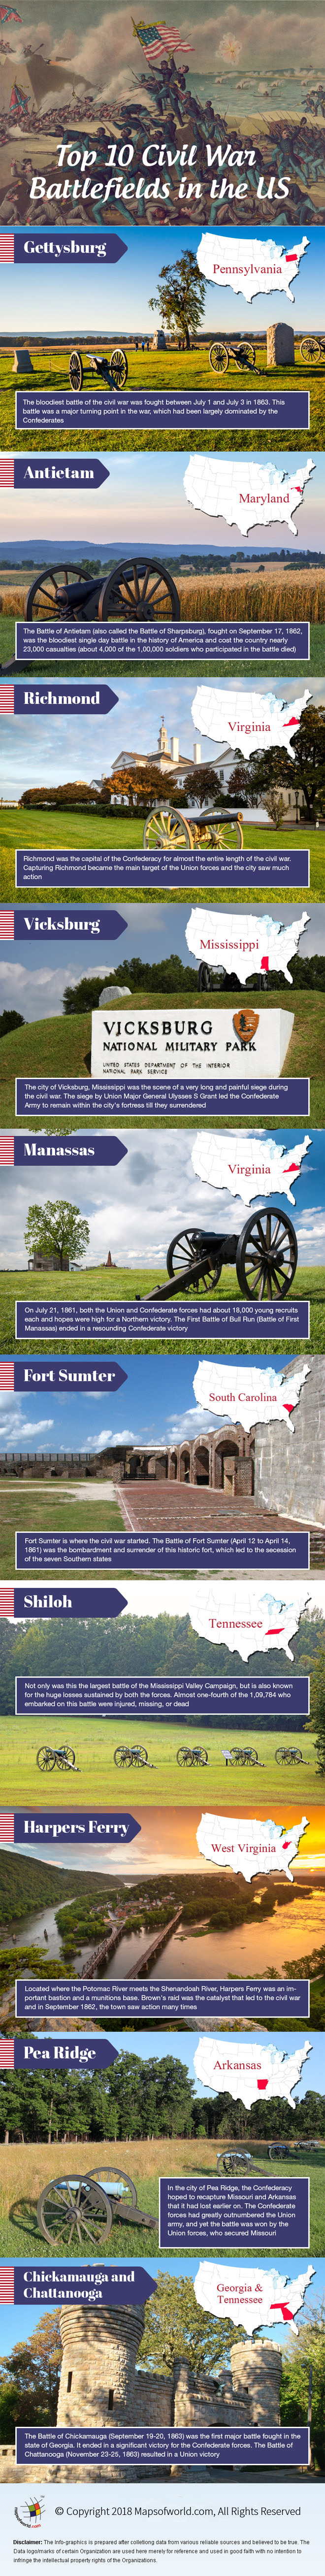 infographic for top 10 civil war battlefields in the USA